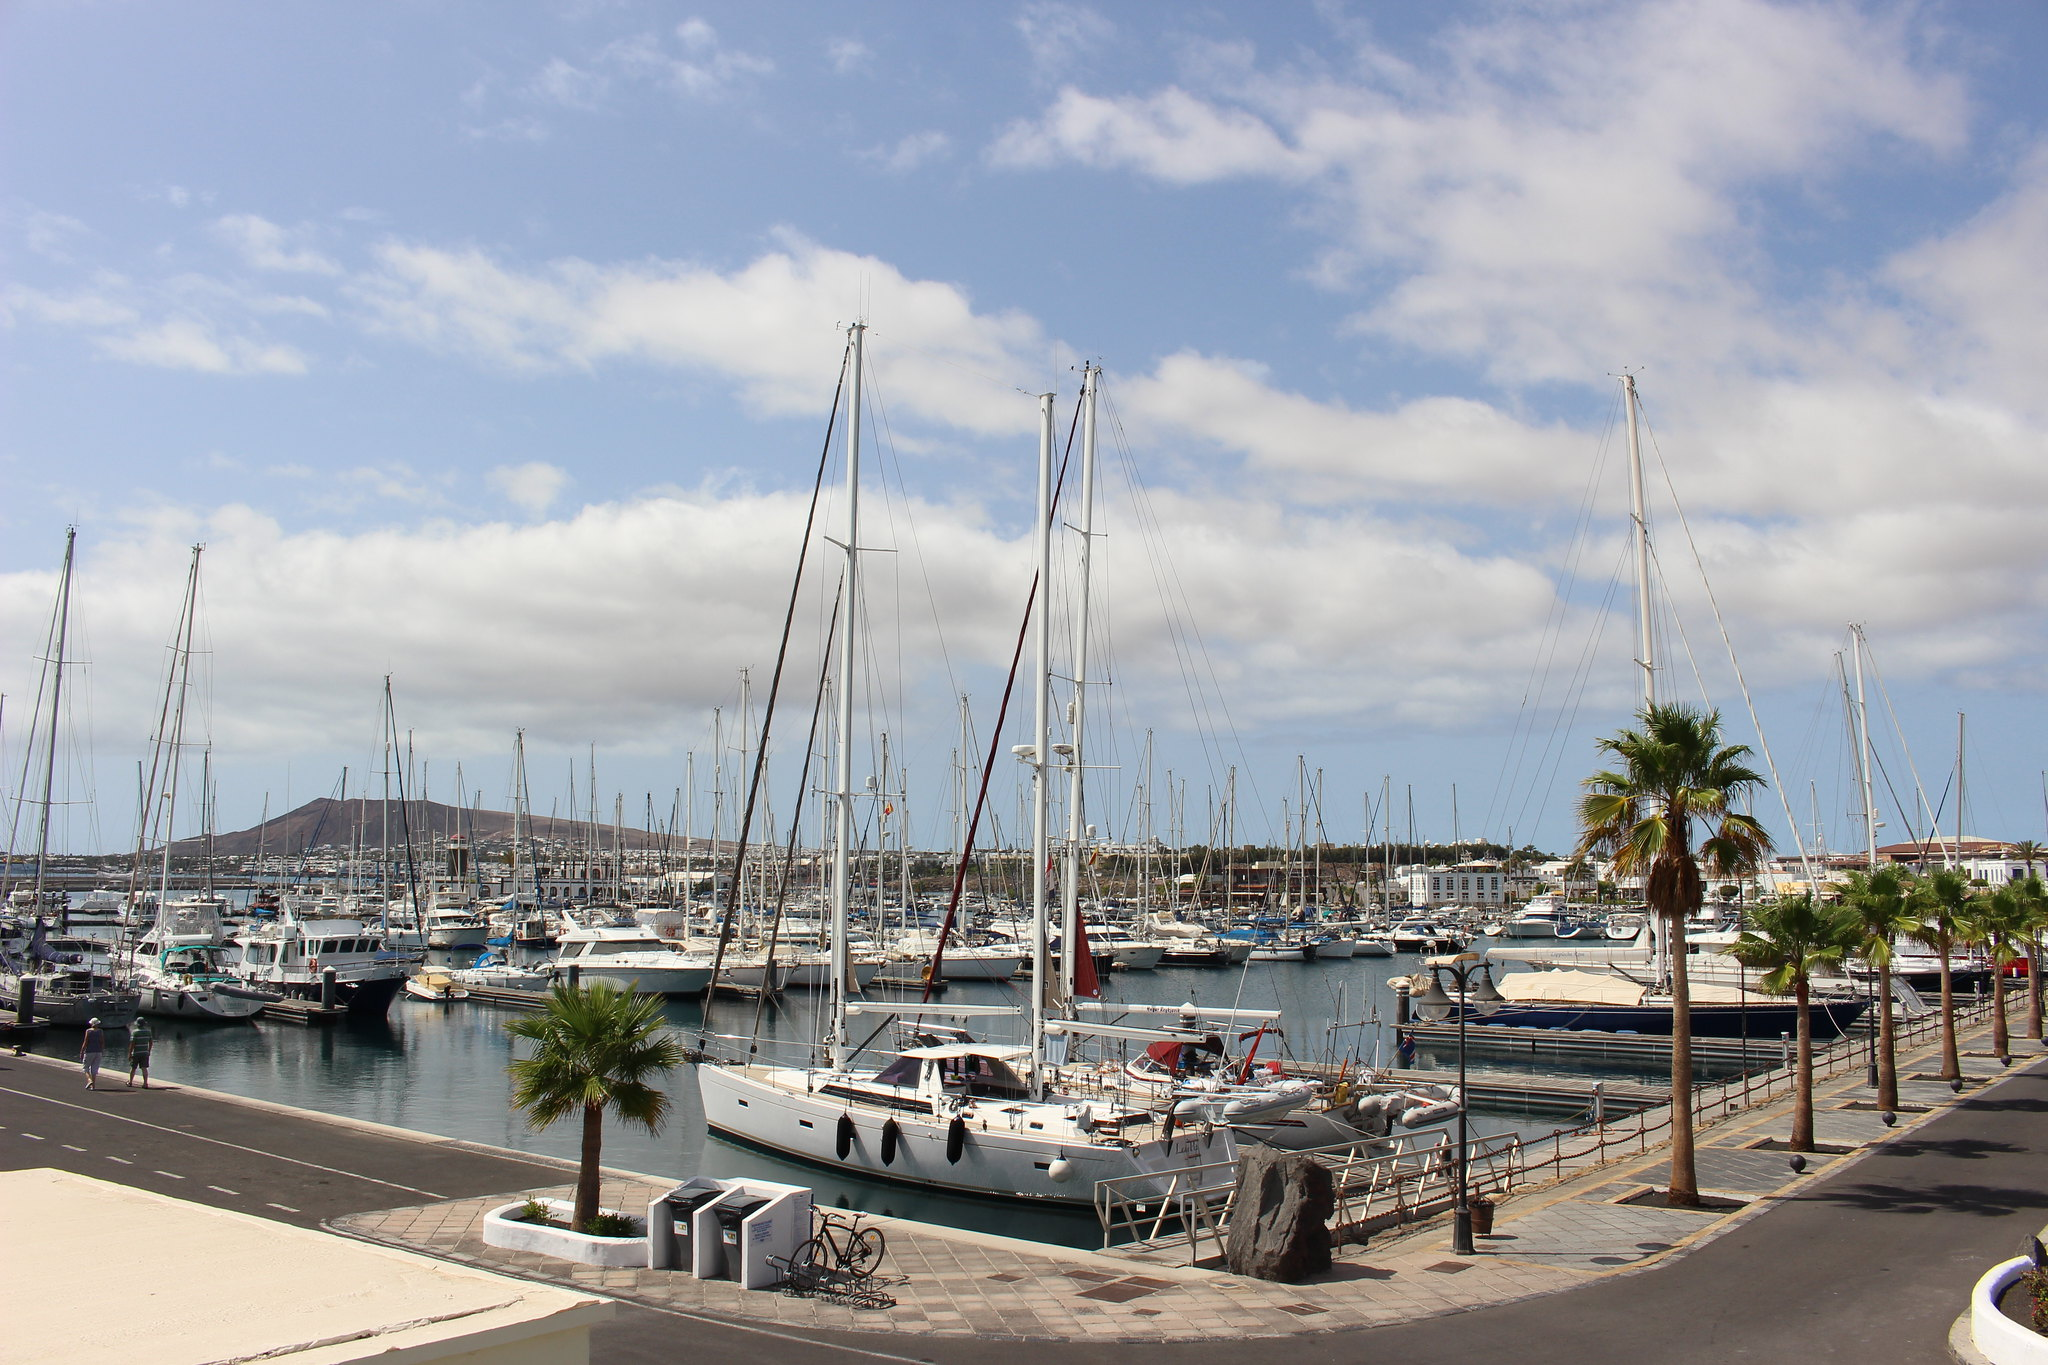 10 Best Things to do in Lanzarote, Spain